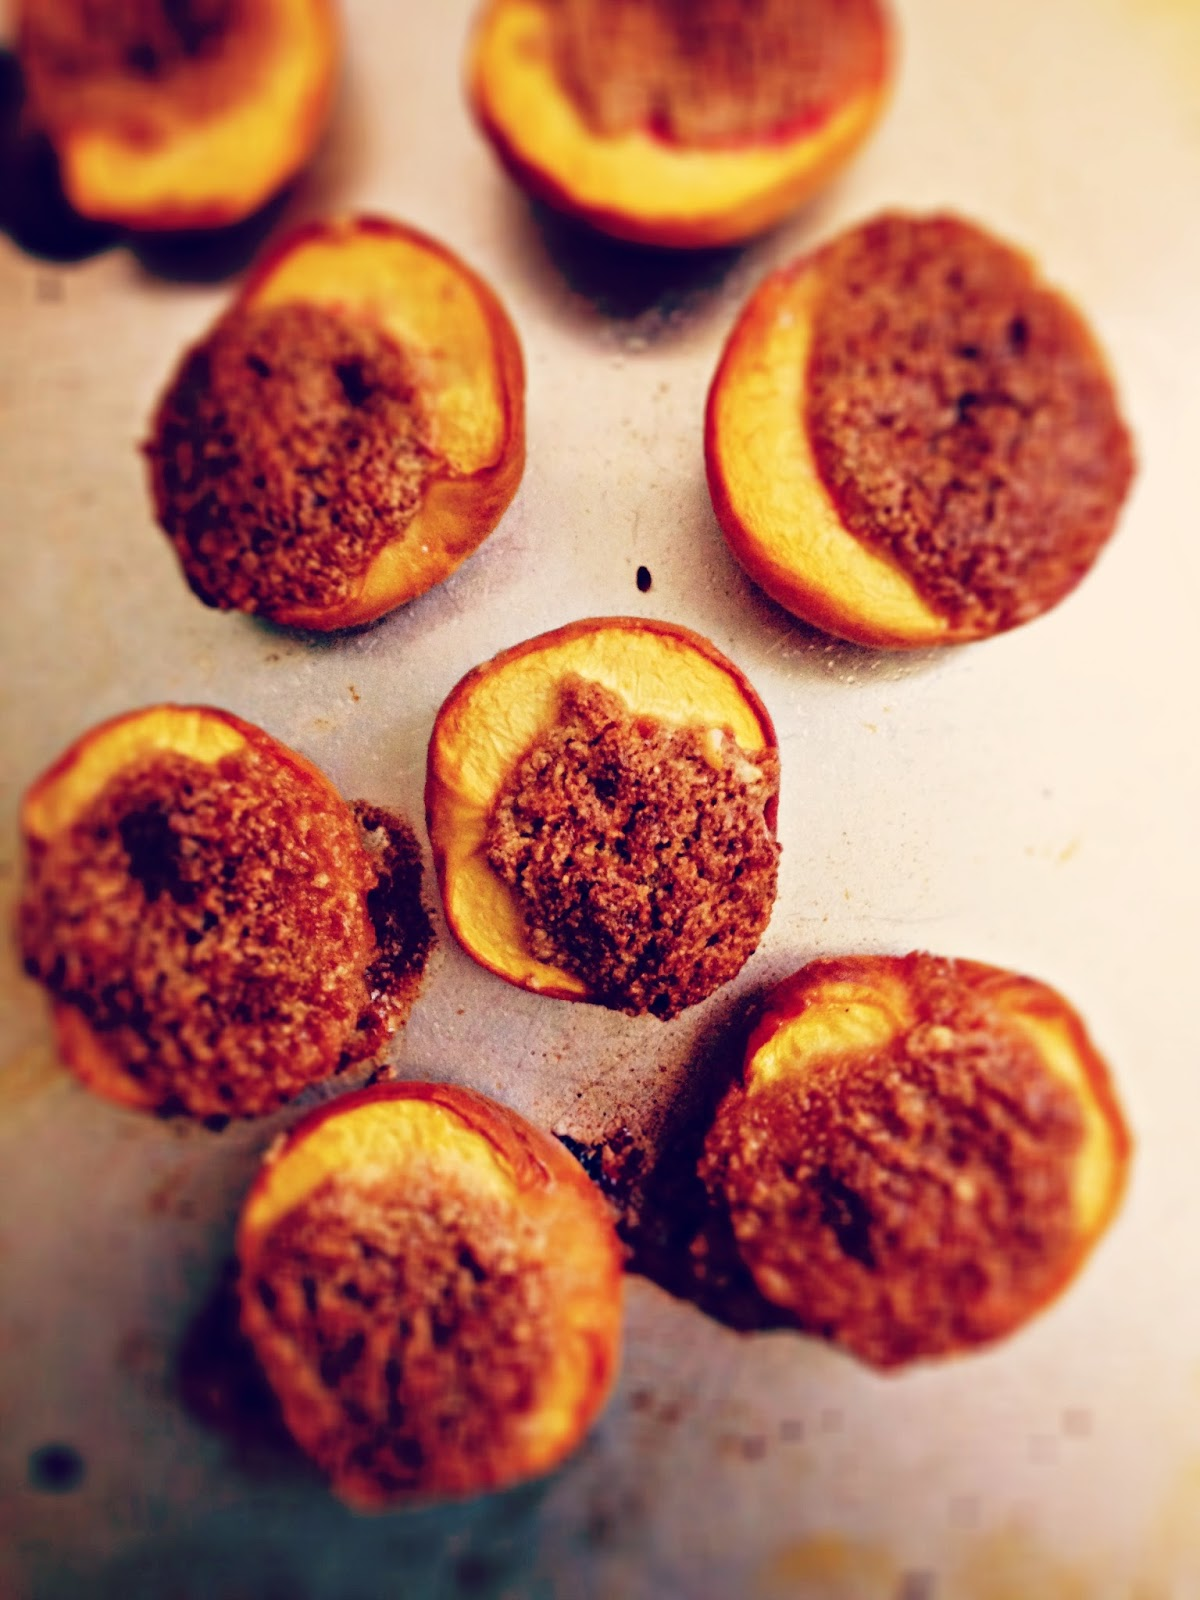 the cut peaches, and roast until the crust is golden and the fruit ...